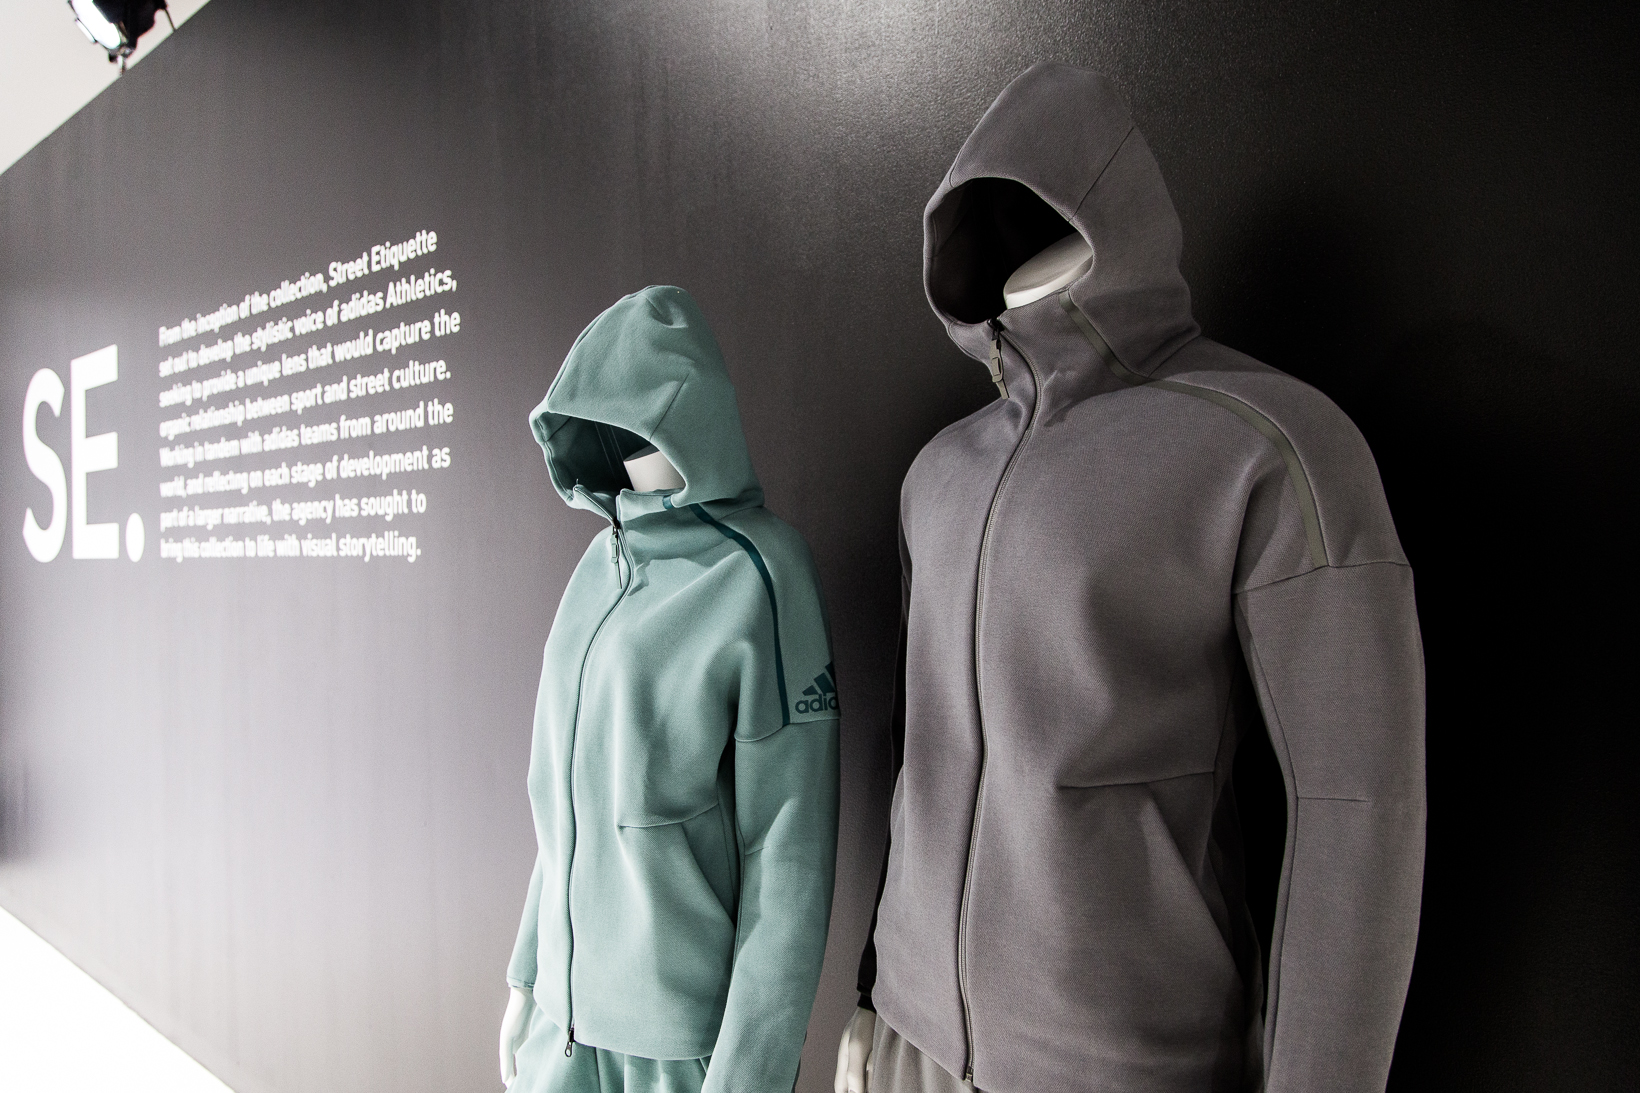 adidas-athletics-nyc-event-recap-9.jpg?q